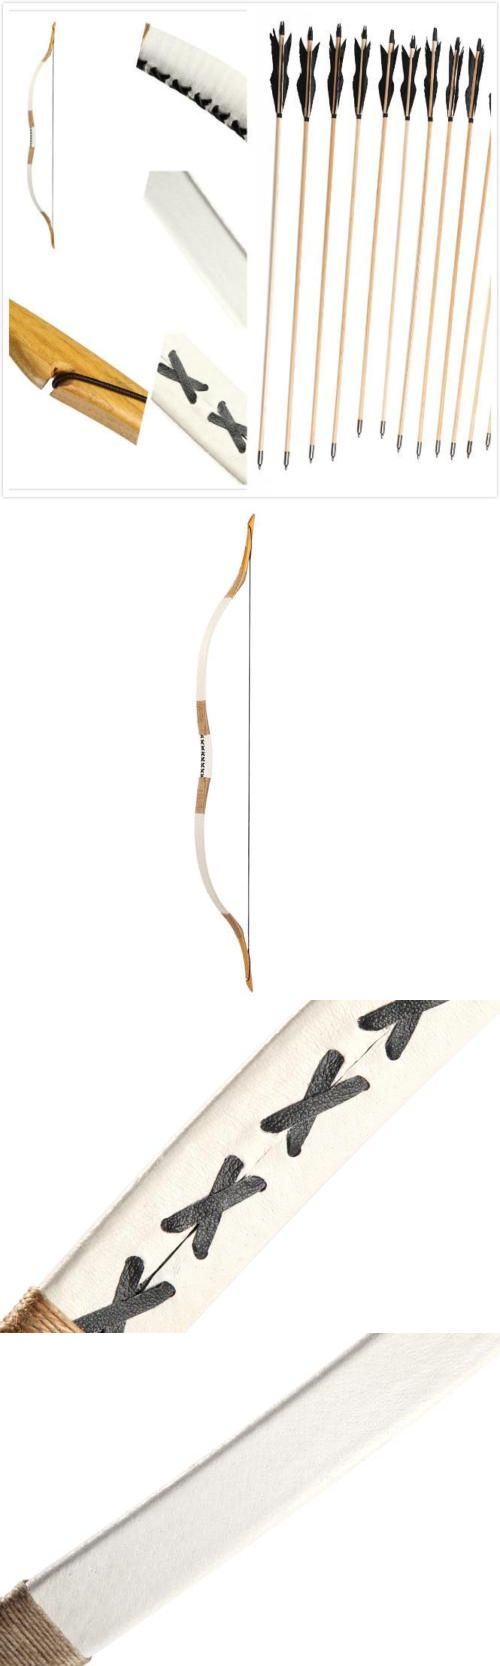 Longbows 181294: Archery Set Traditional Pigskin Longbow Recurve Bow 20Lb-110Lb +12 Wooden Arrow -> BUY IT NOW ONLY: $99.99 on eBay!